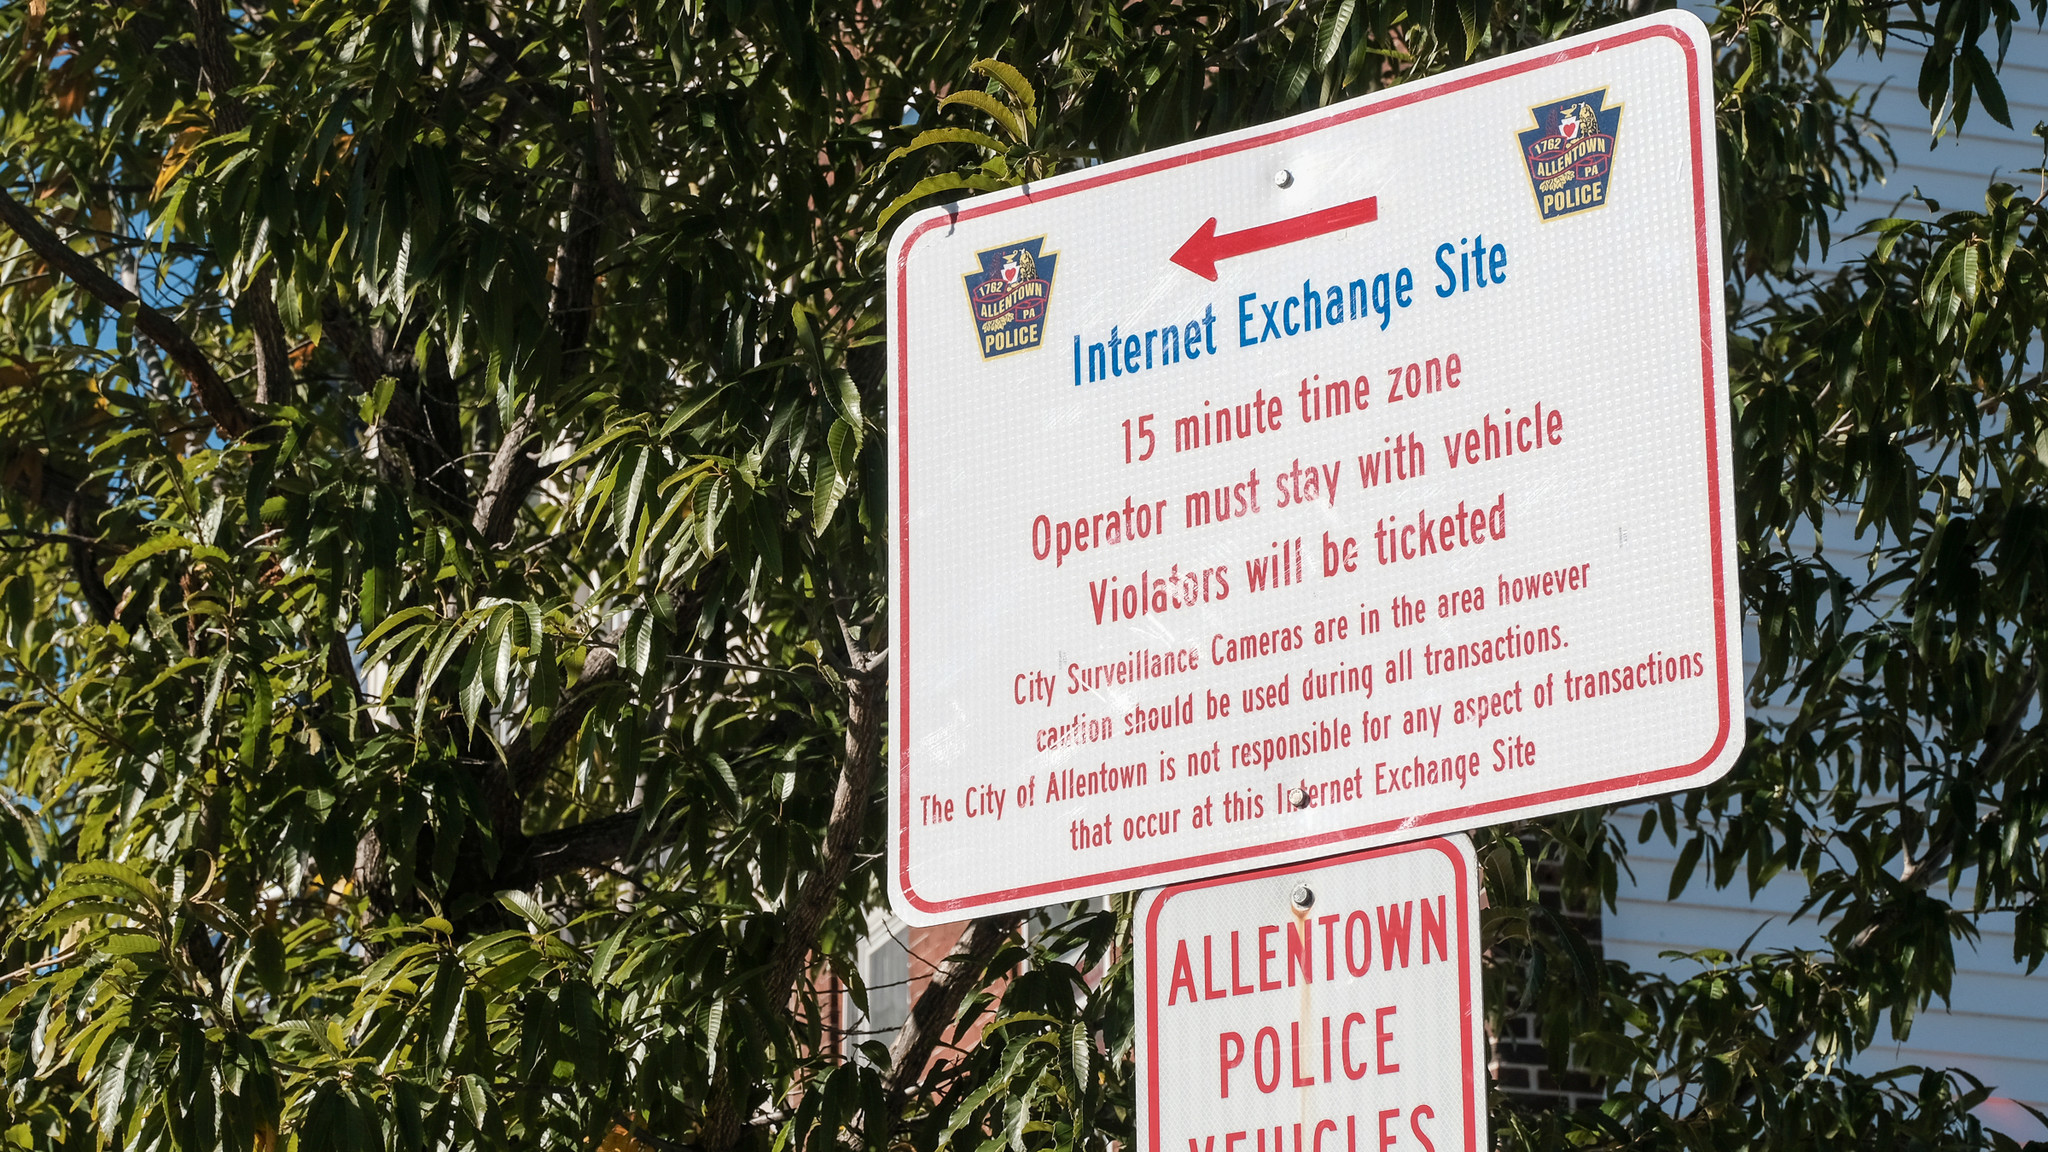 Allentown police unveil safe zone for online sales - The ...